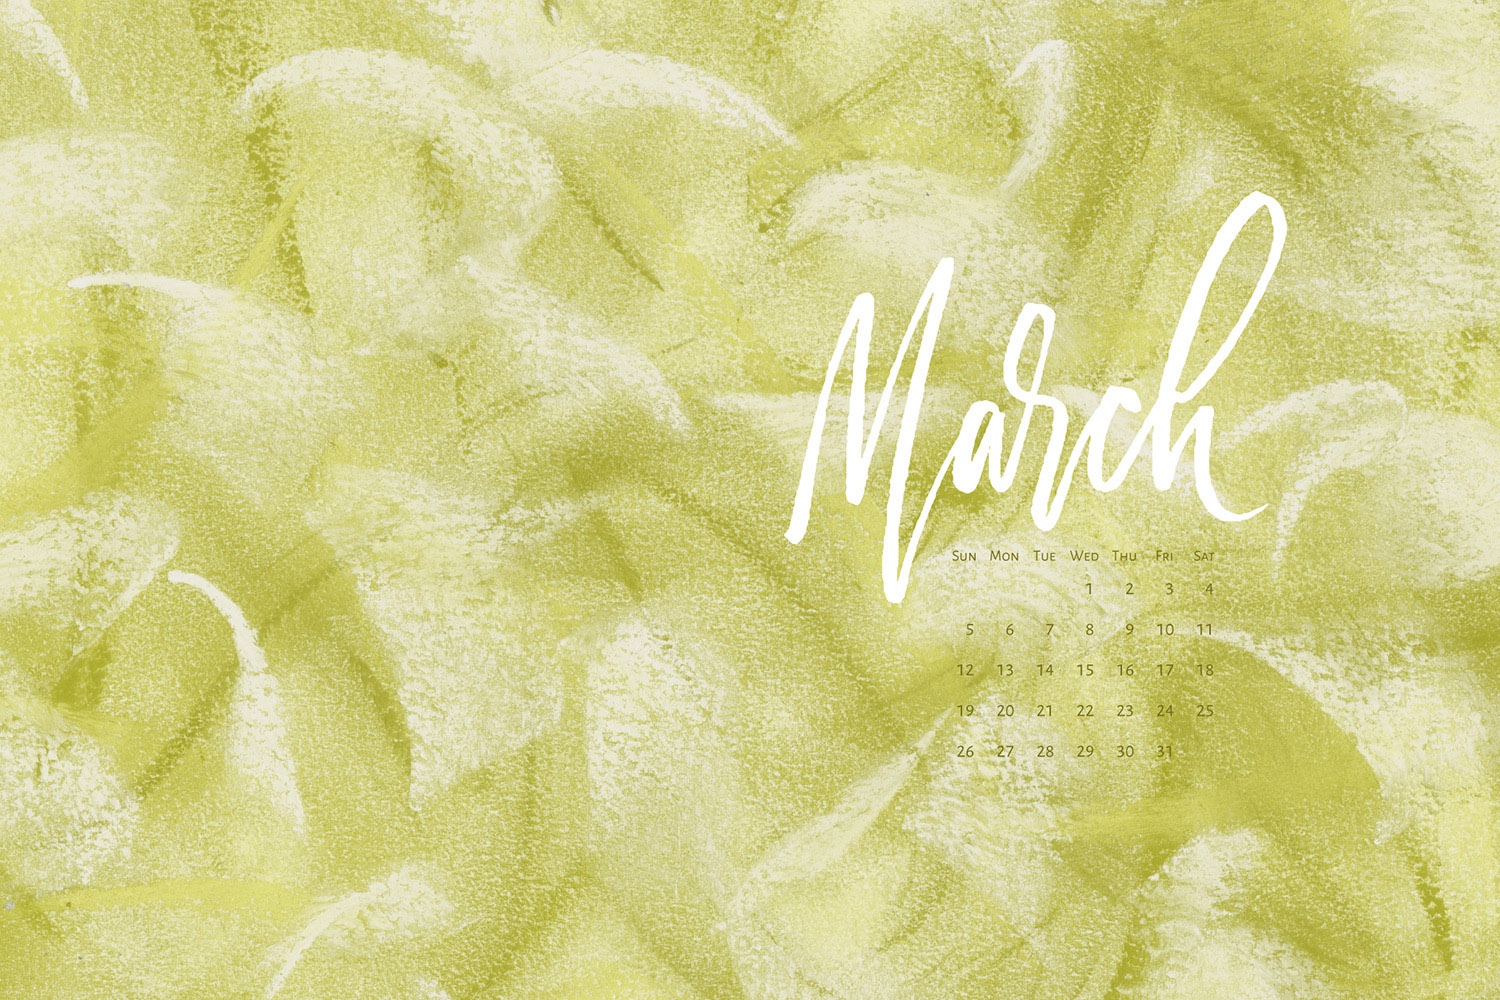 Download a free calendar for March 2017 |©typeandgraphicslab.com | For personal use only